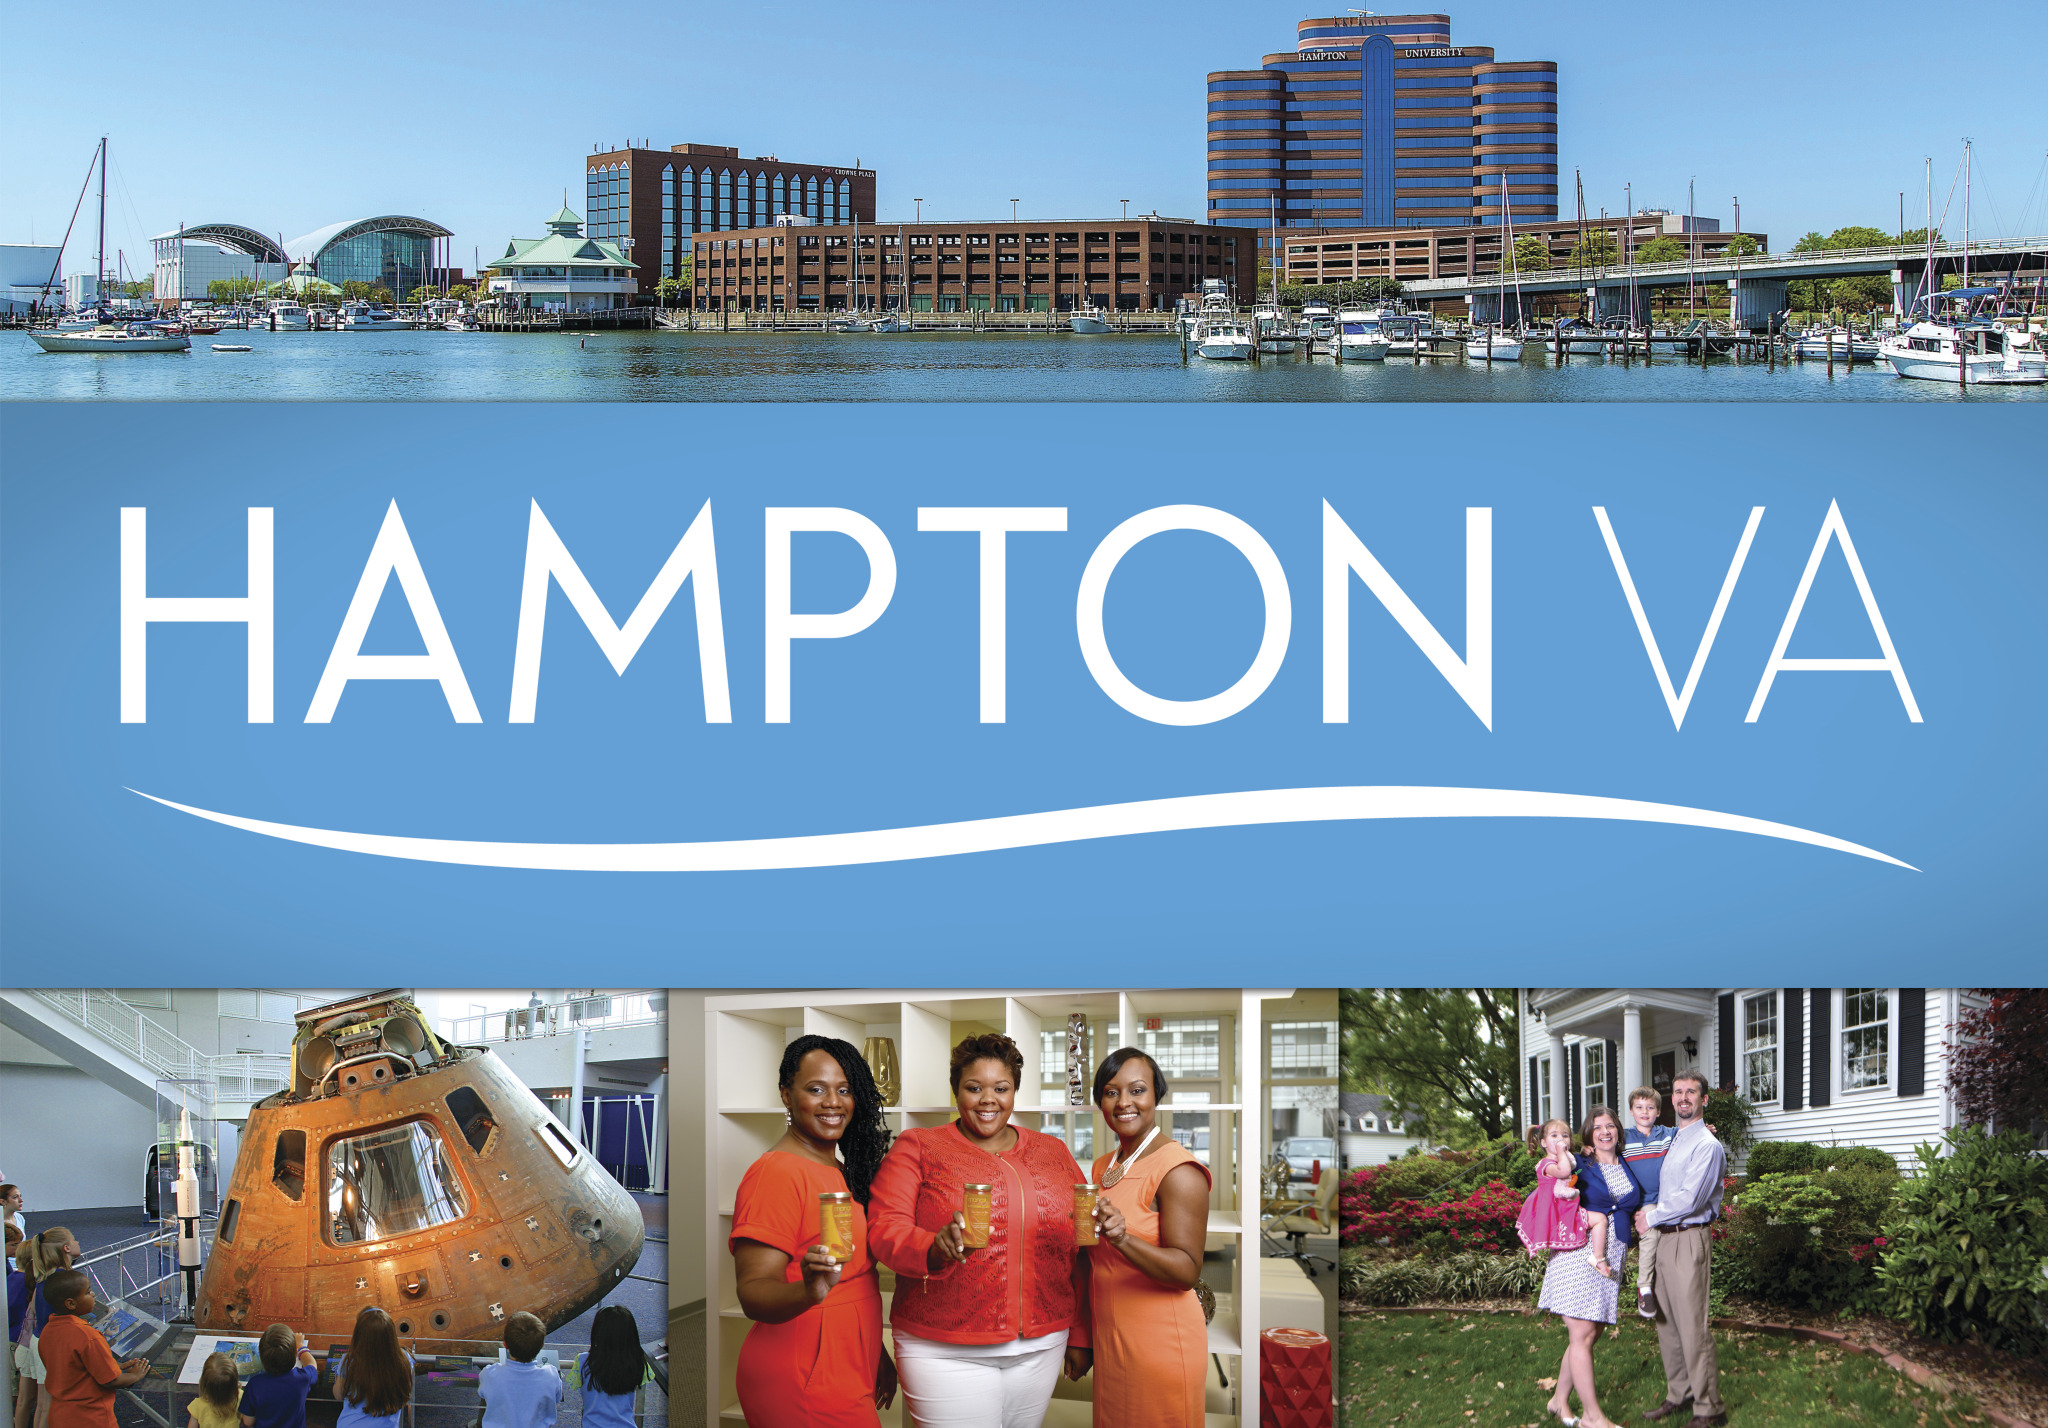 Picture: Courtesy the  City of Hampton